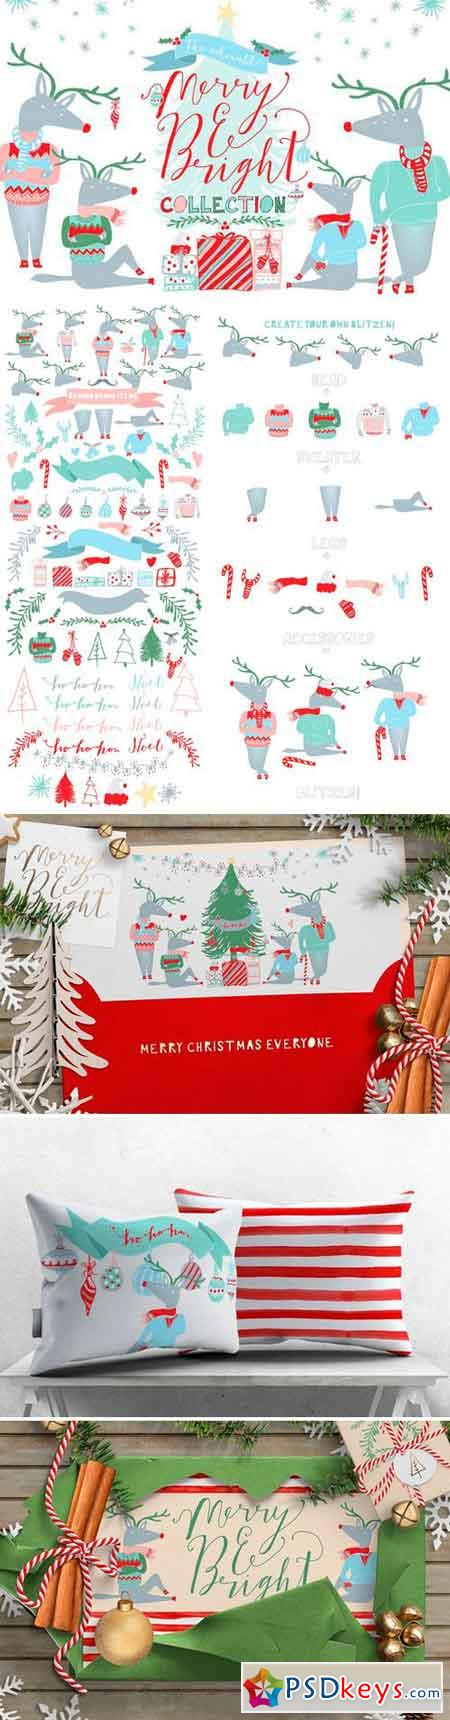 Merry and Bright Christmas Clipart 421466